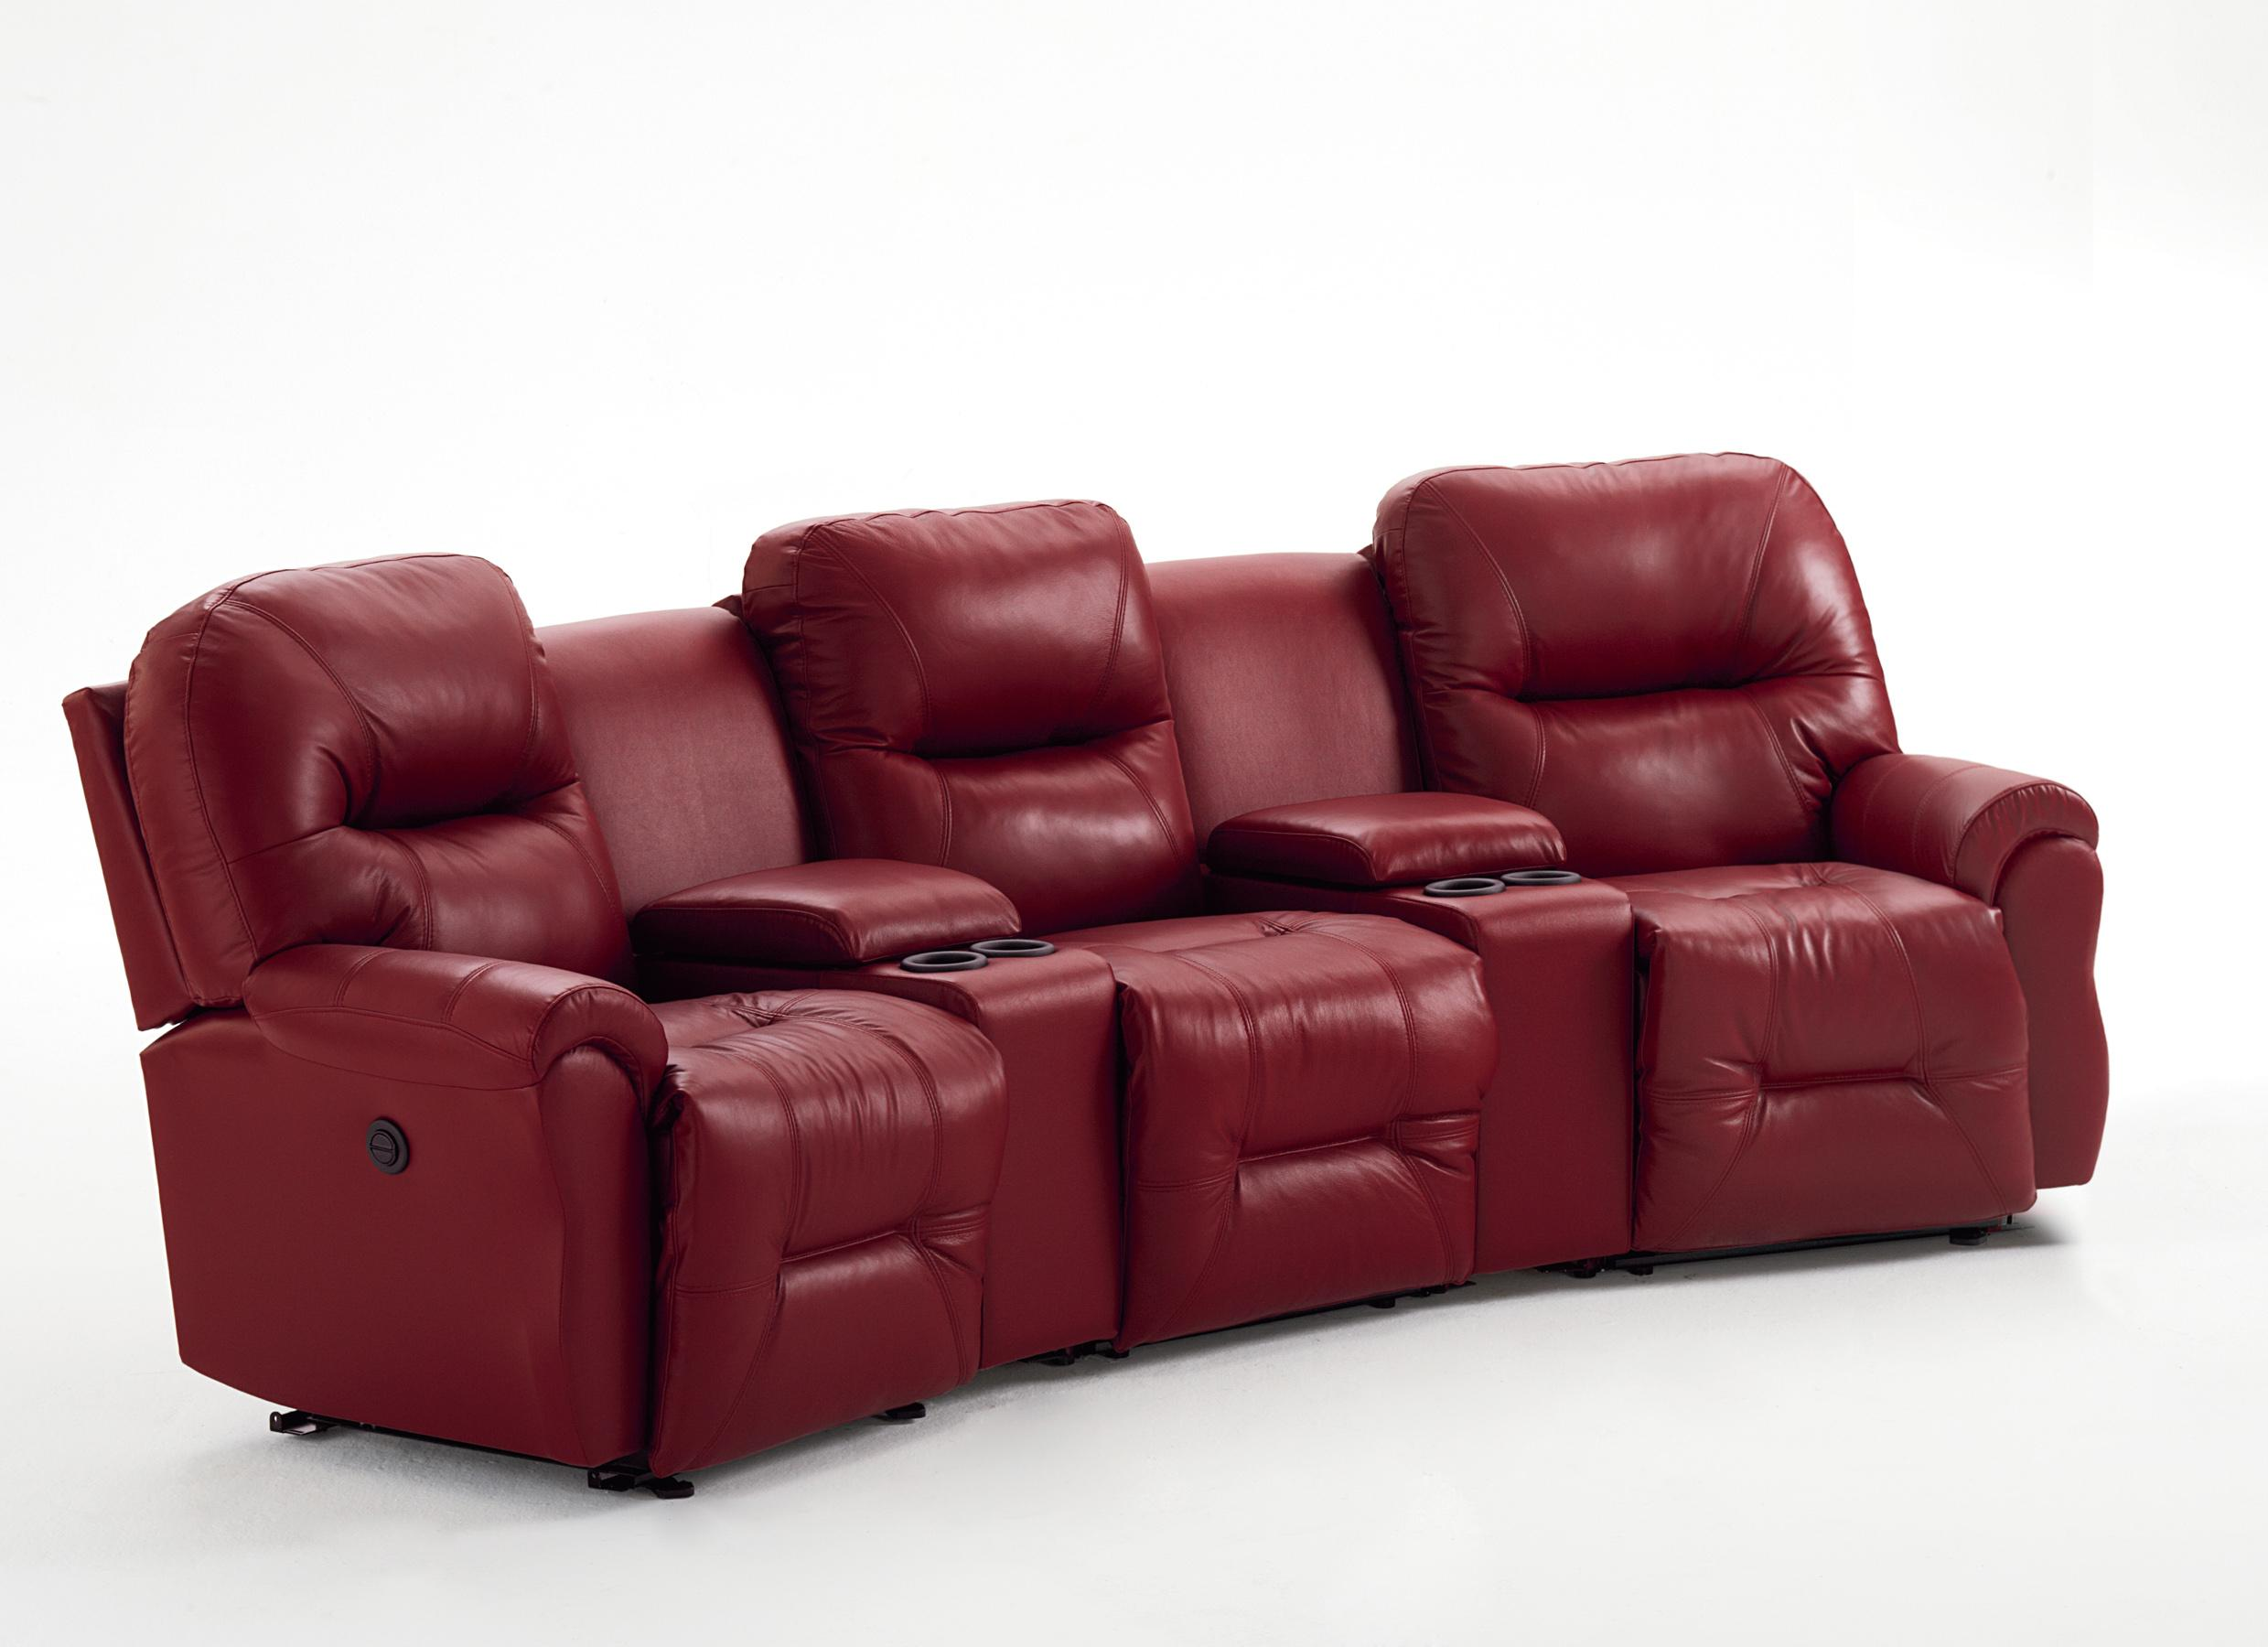 3 Seater Power Reclining Home Theater Group